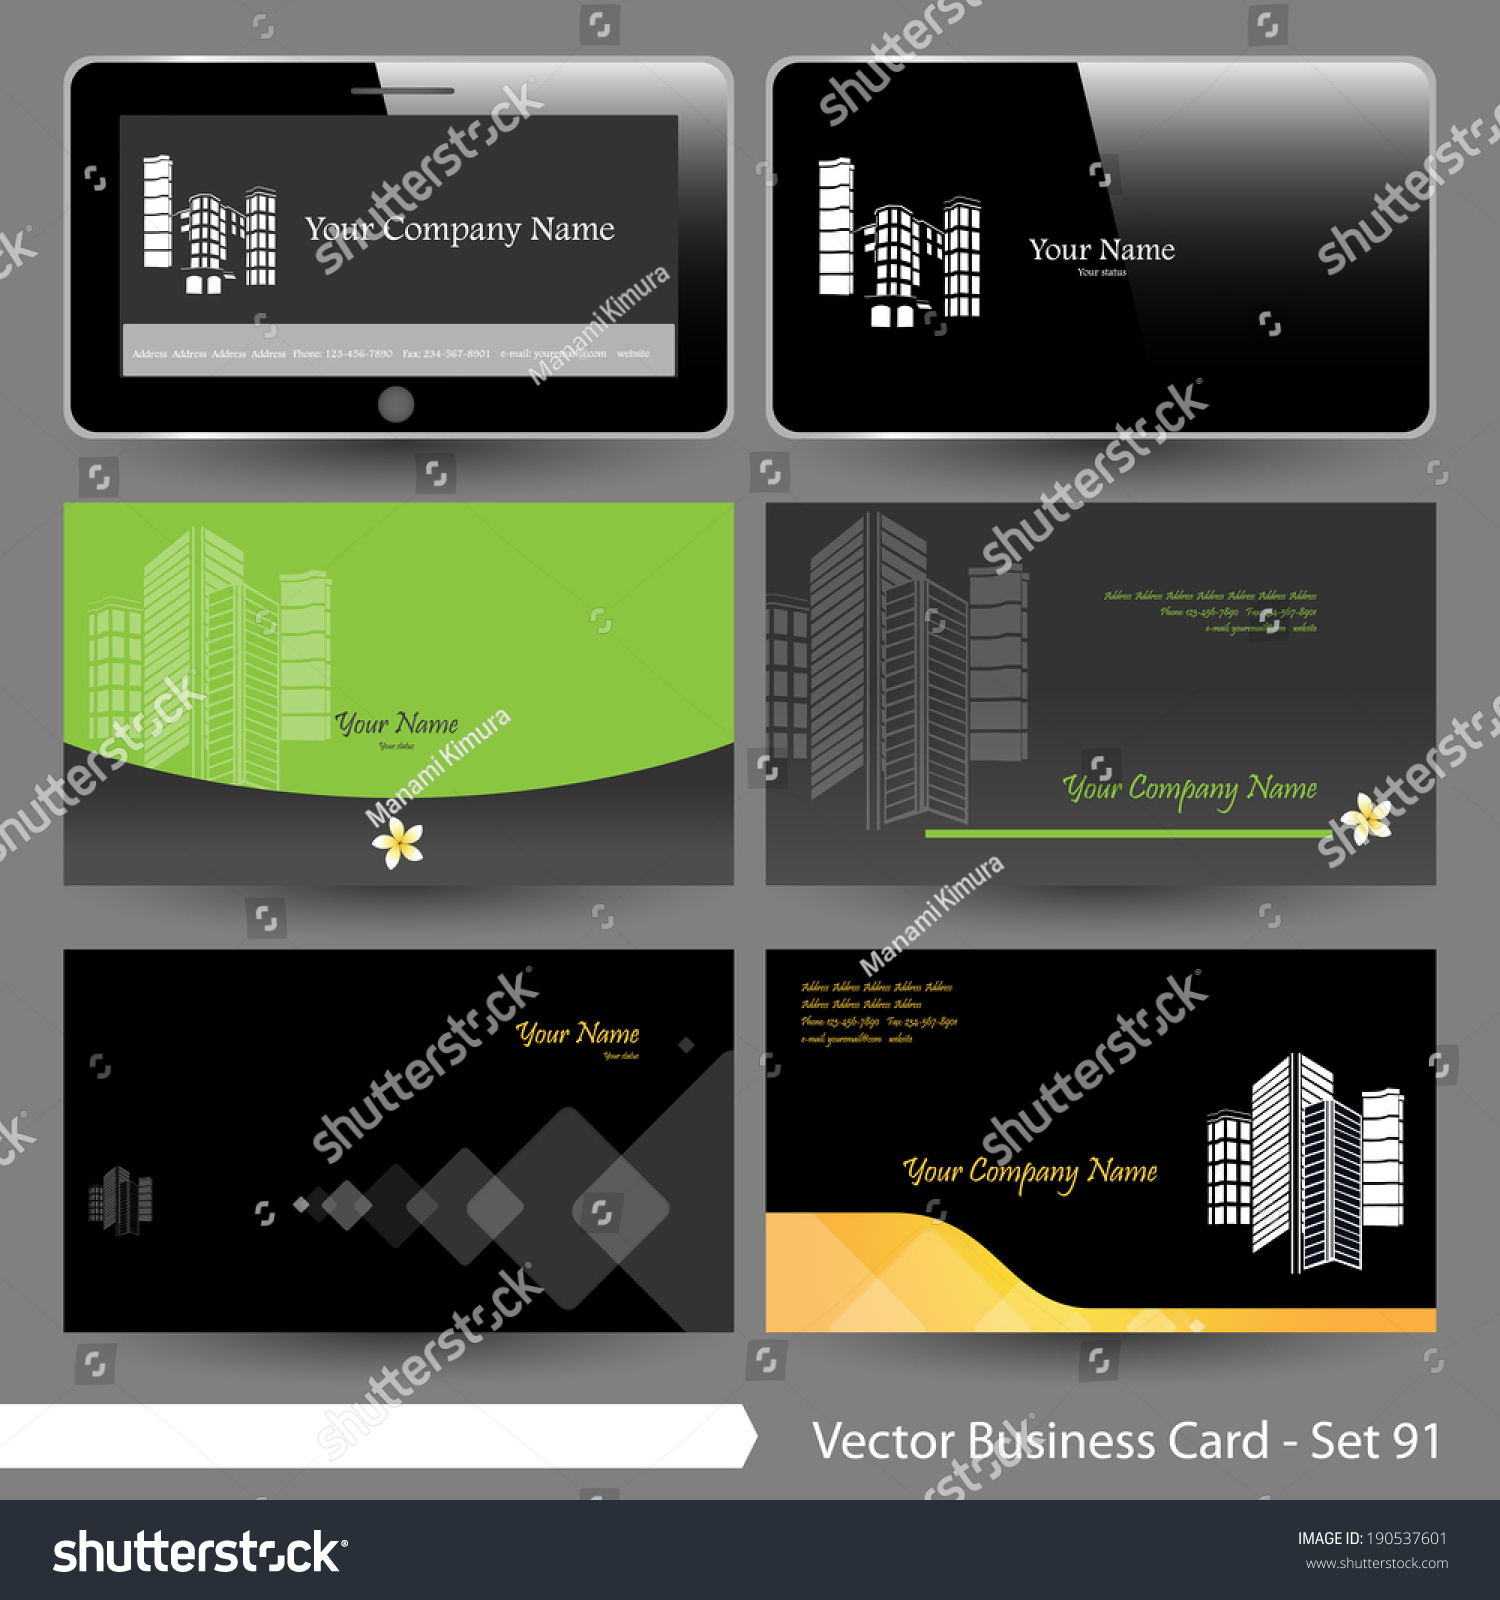 Vector business card template set real stock vector royalty free vector business card template set real estate building flower and computer graphic design accmission Gallery